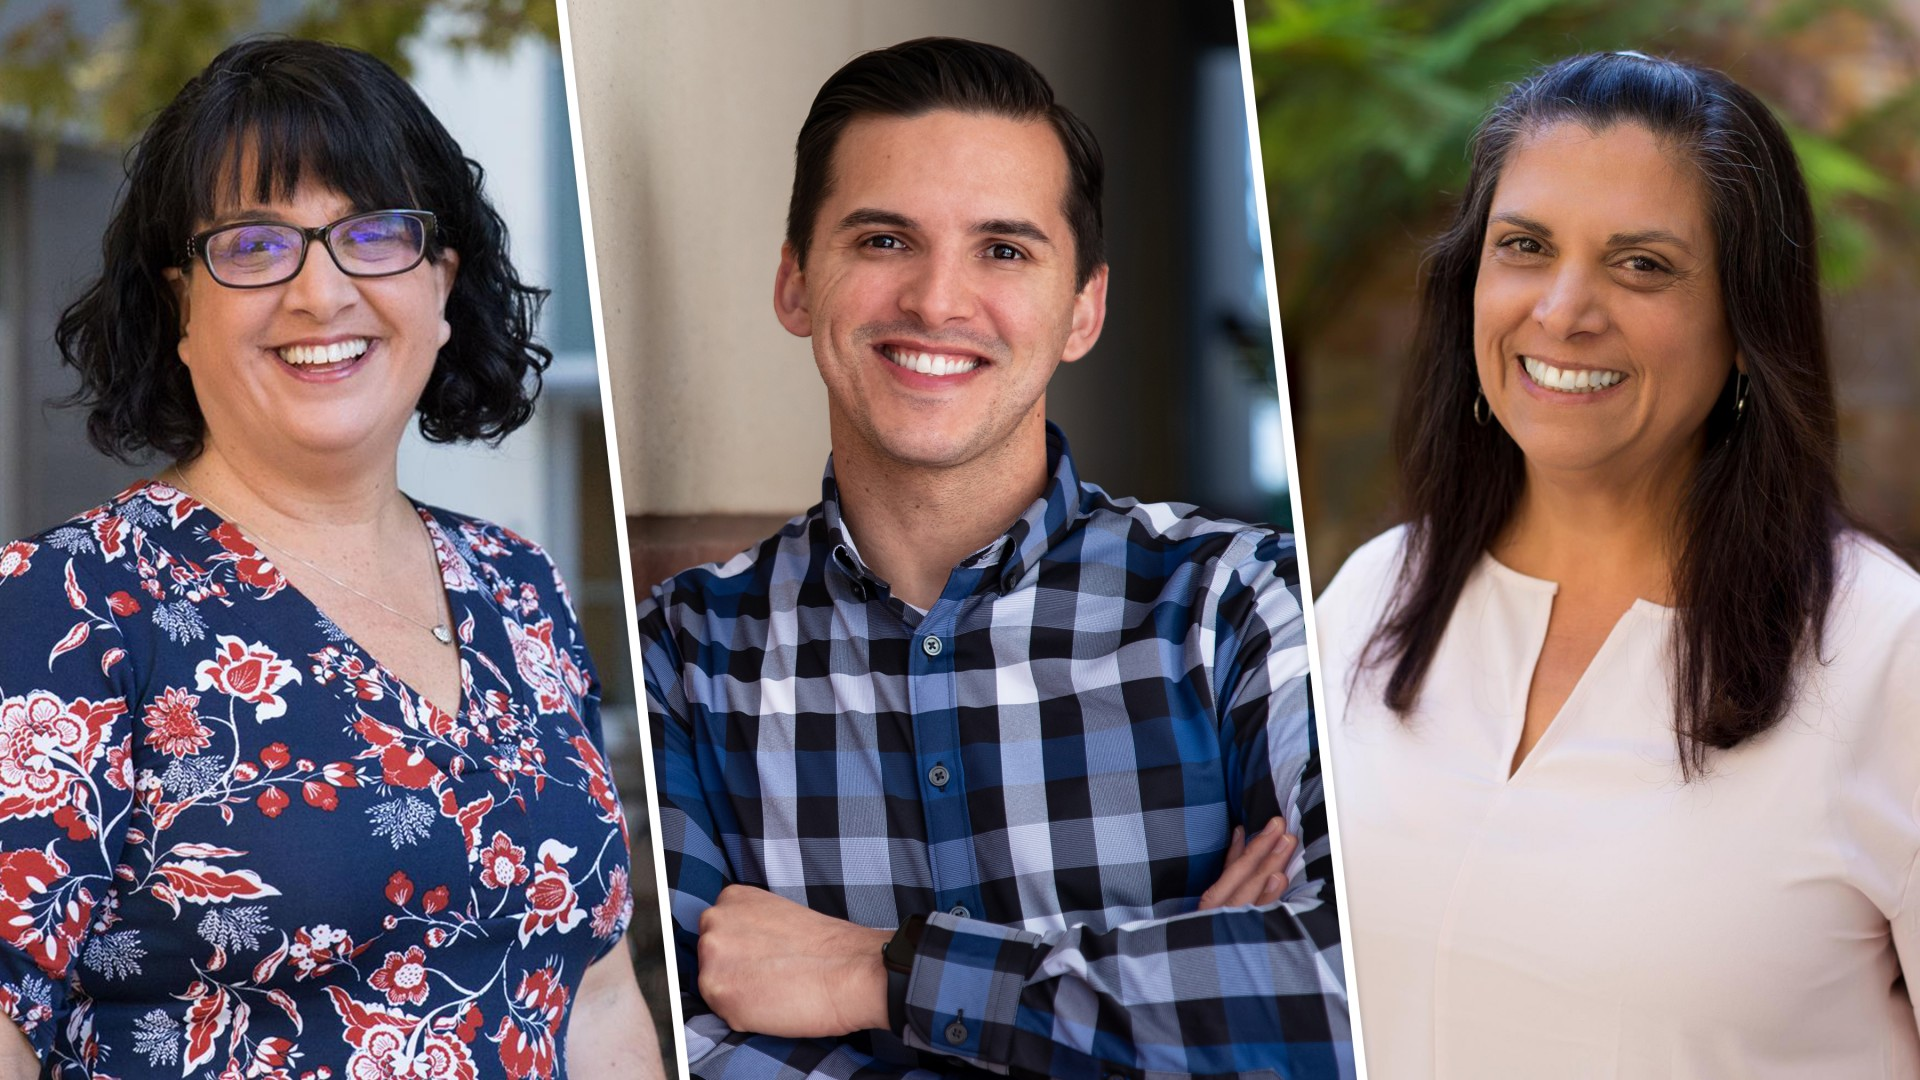 CSUSM professors (left to right) Konane Martinez, Richard Armenta and Laurette McGuire are serving on a San Diego County task force to address COVID-19 health disparities.